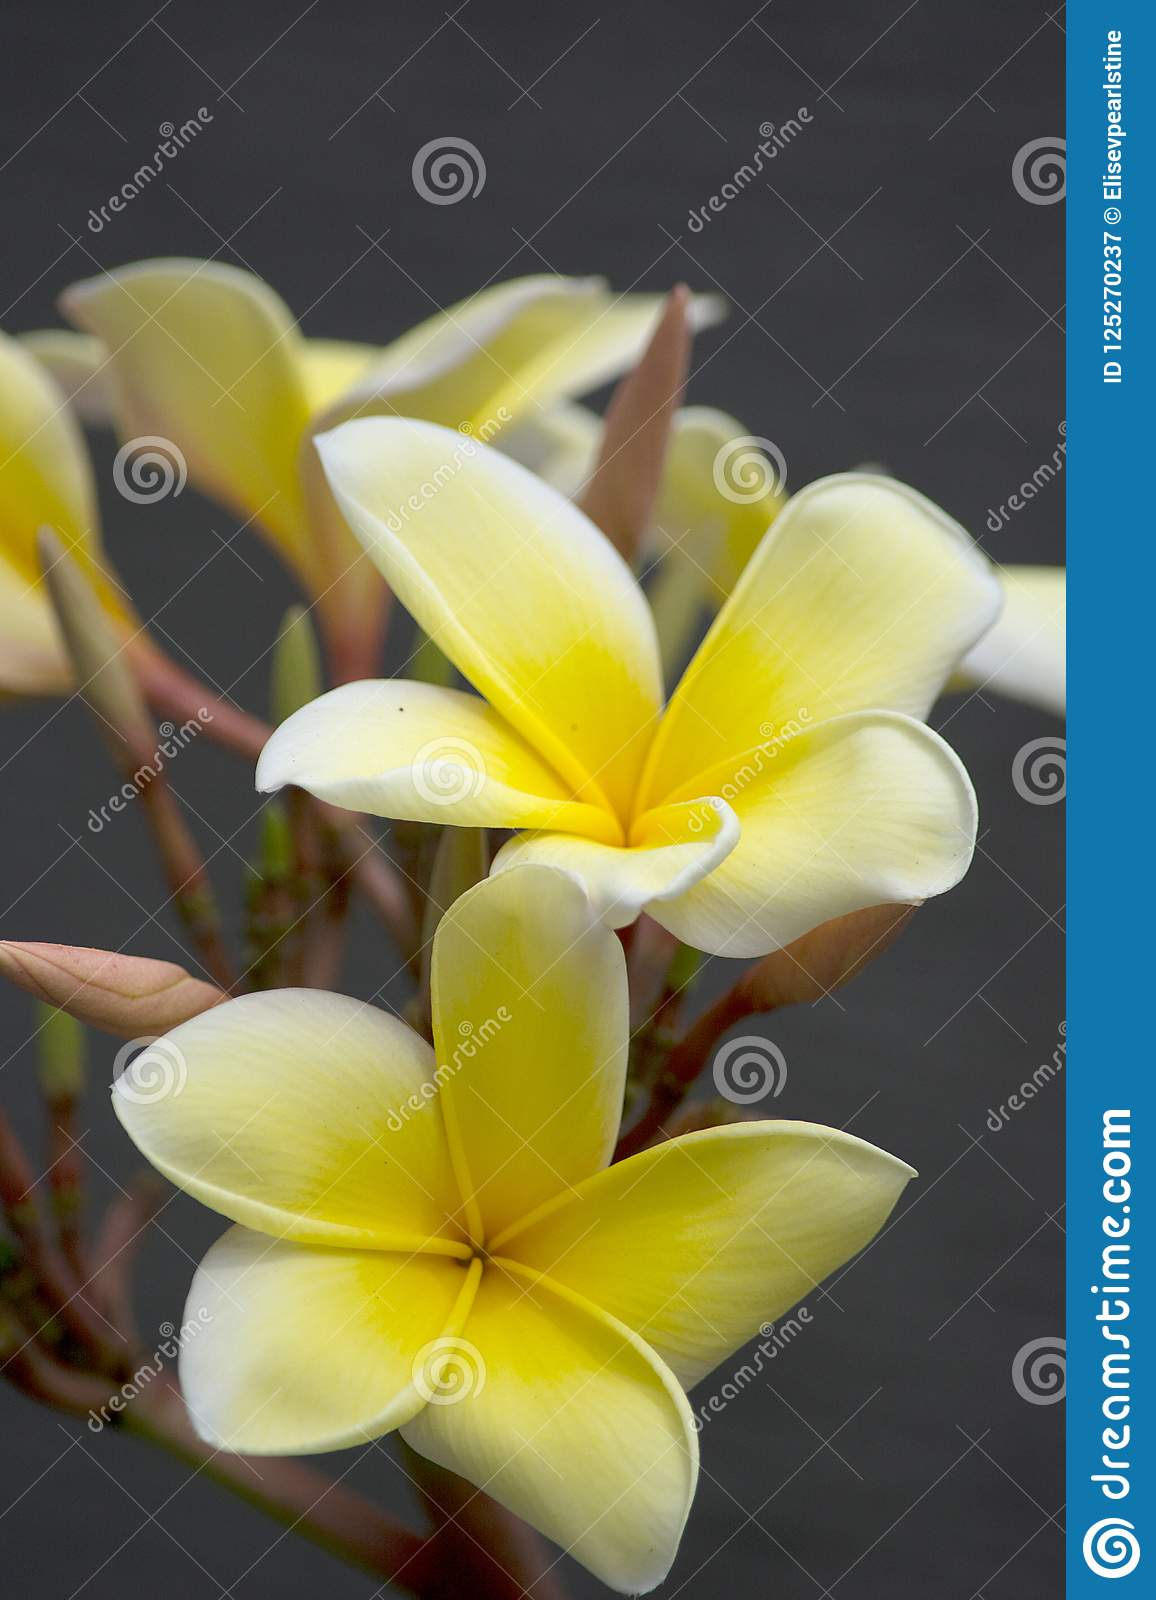 Frangipani Flowers In Gold And White Are Very Fragrant In The